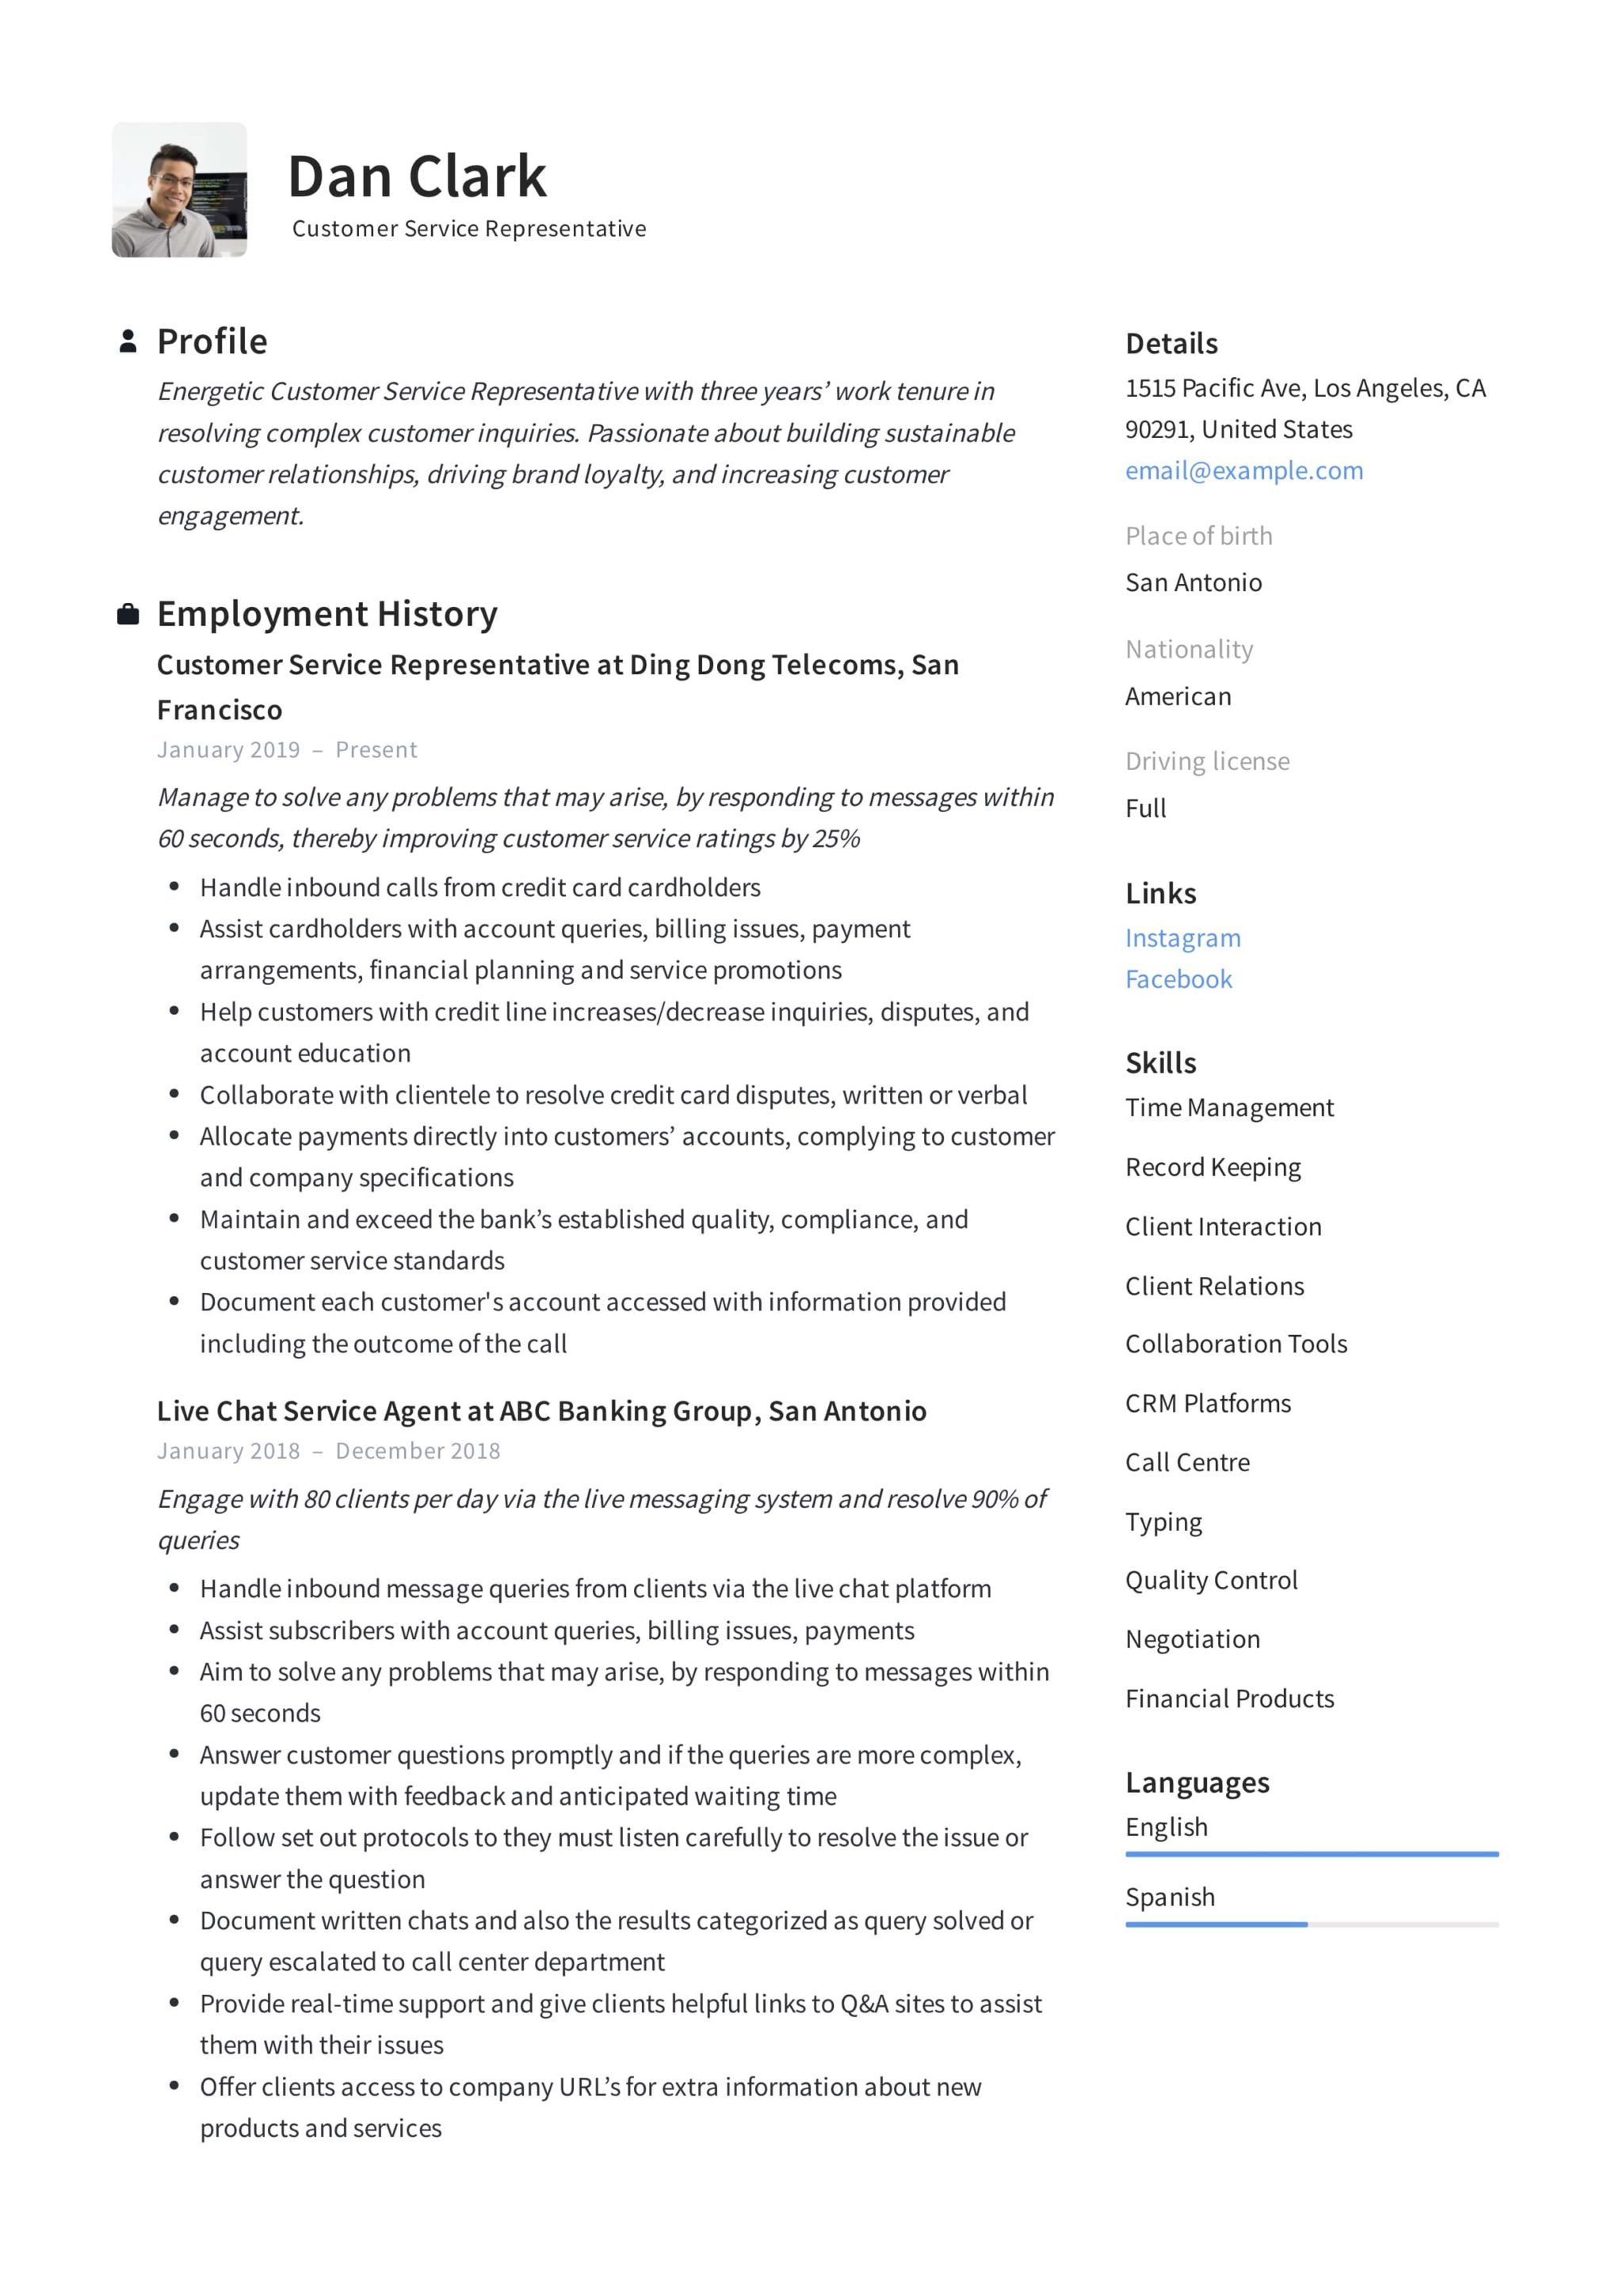 How to: Customer Service Representative Resume & + 12 PDF ...